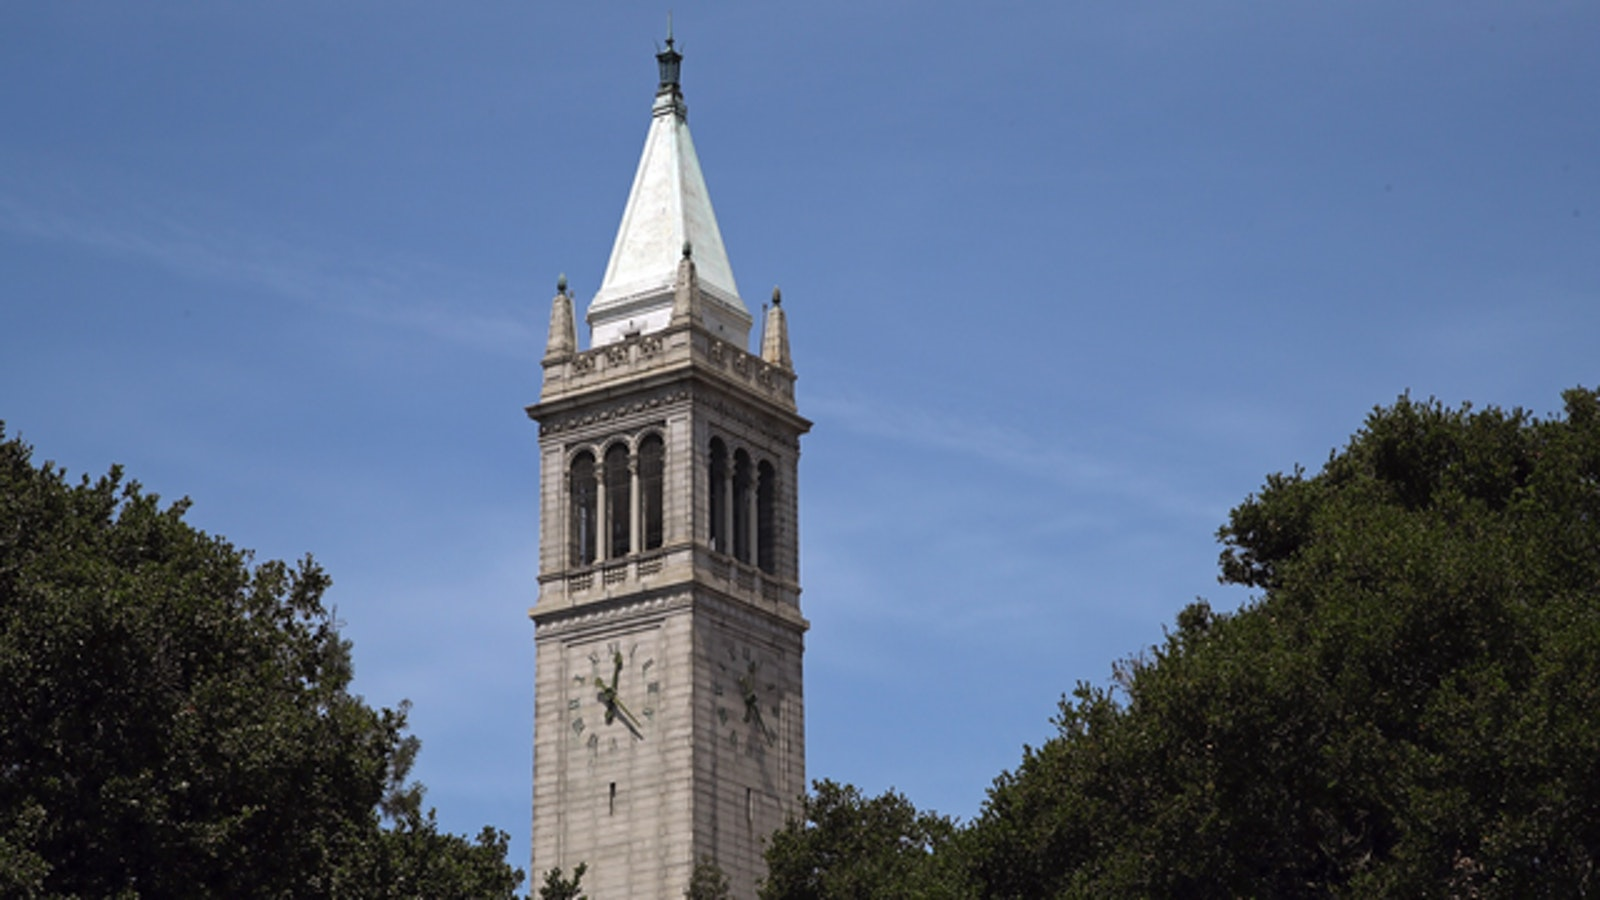 Sather Tower, on the UC Berkeley campus. Photo by AP.